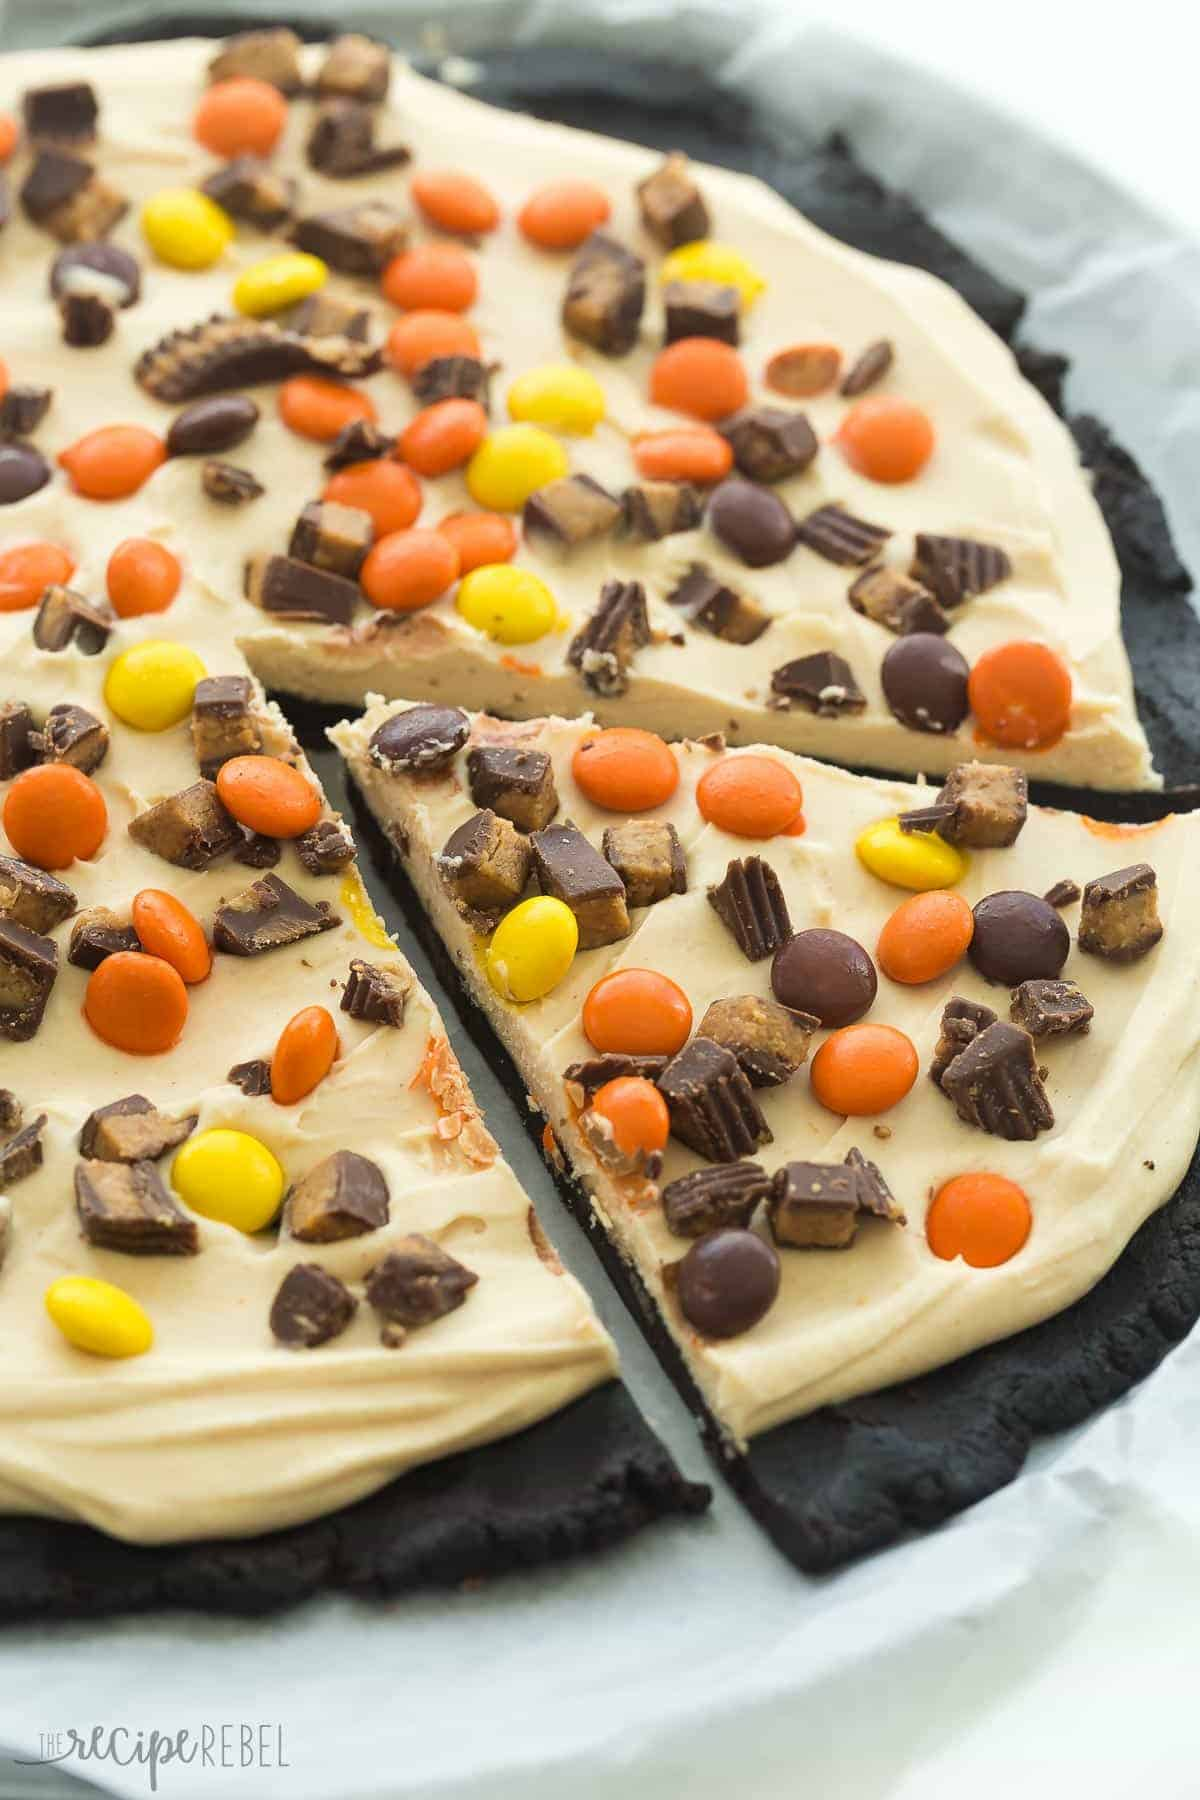 frozen peanut butter cup dessert pizza on pizza pan with one piece cut